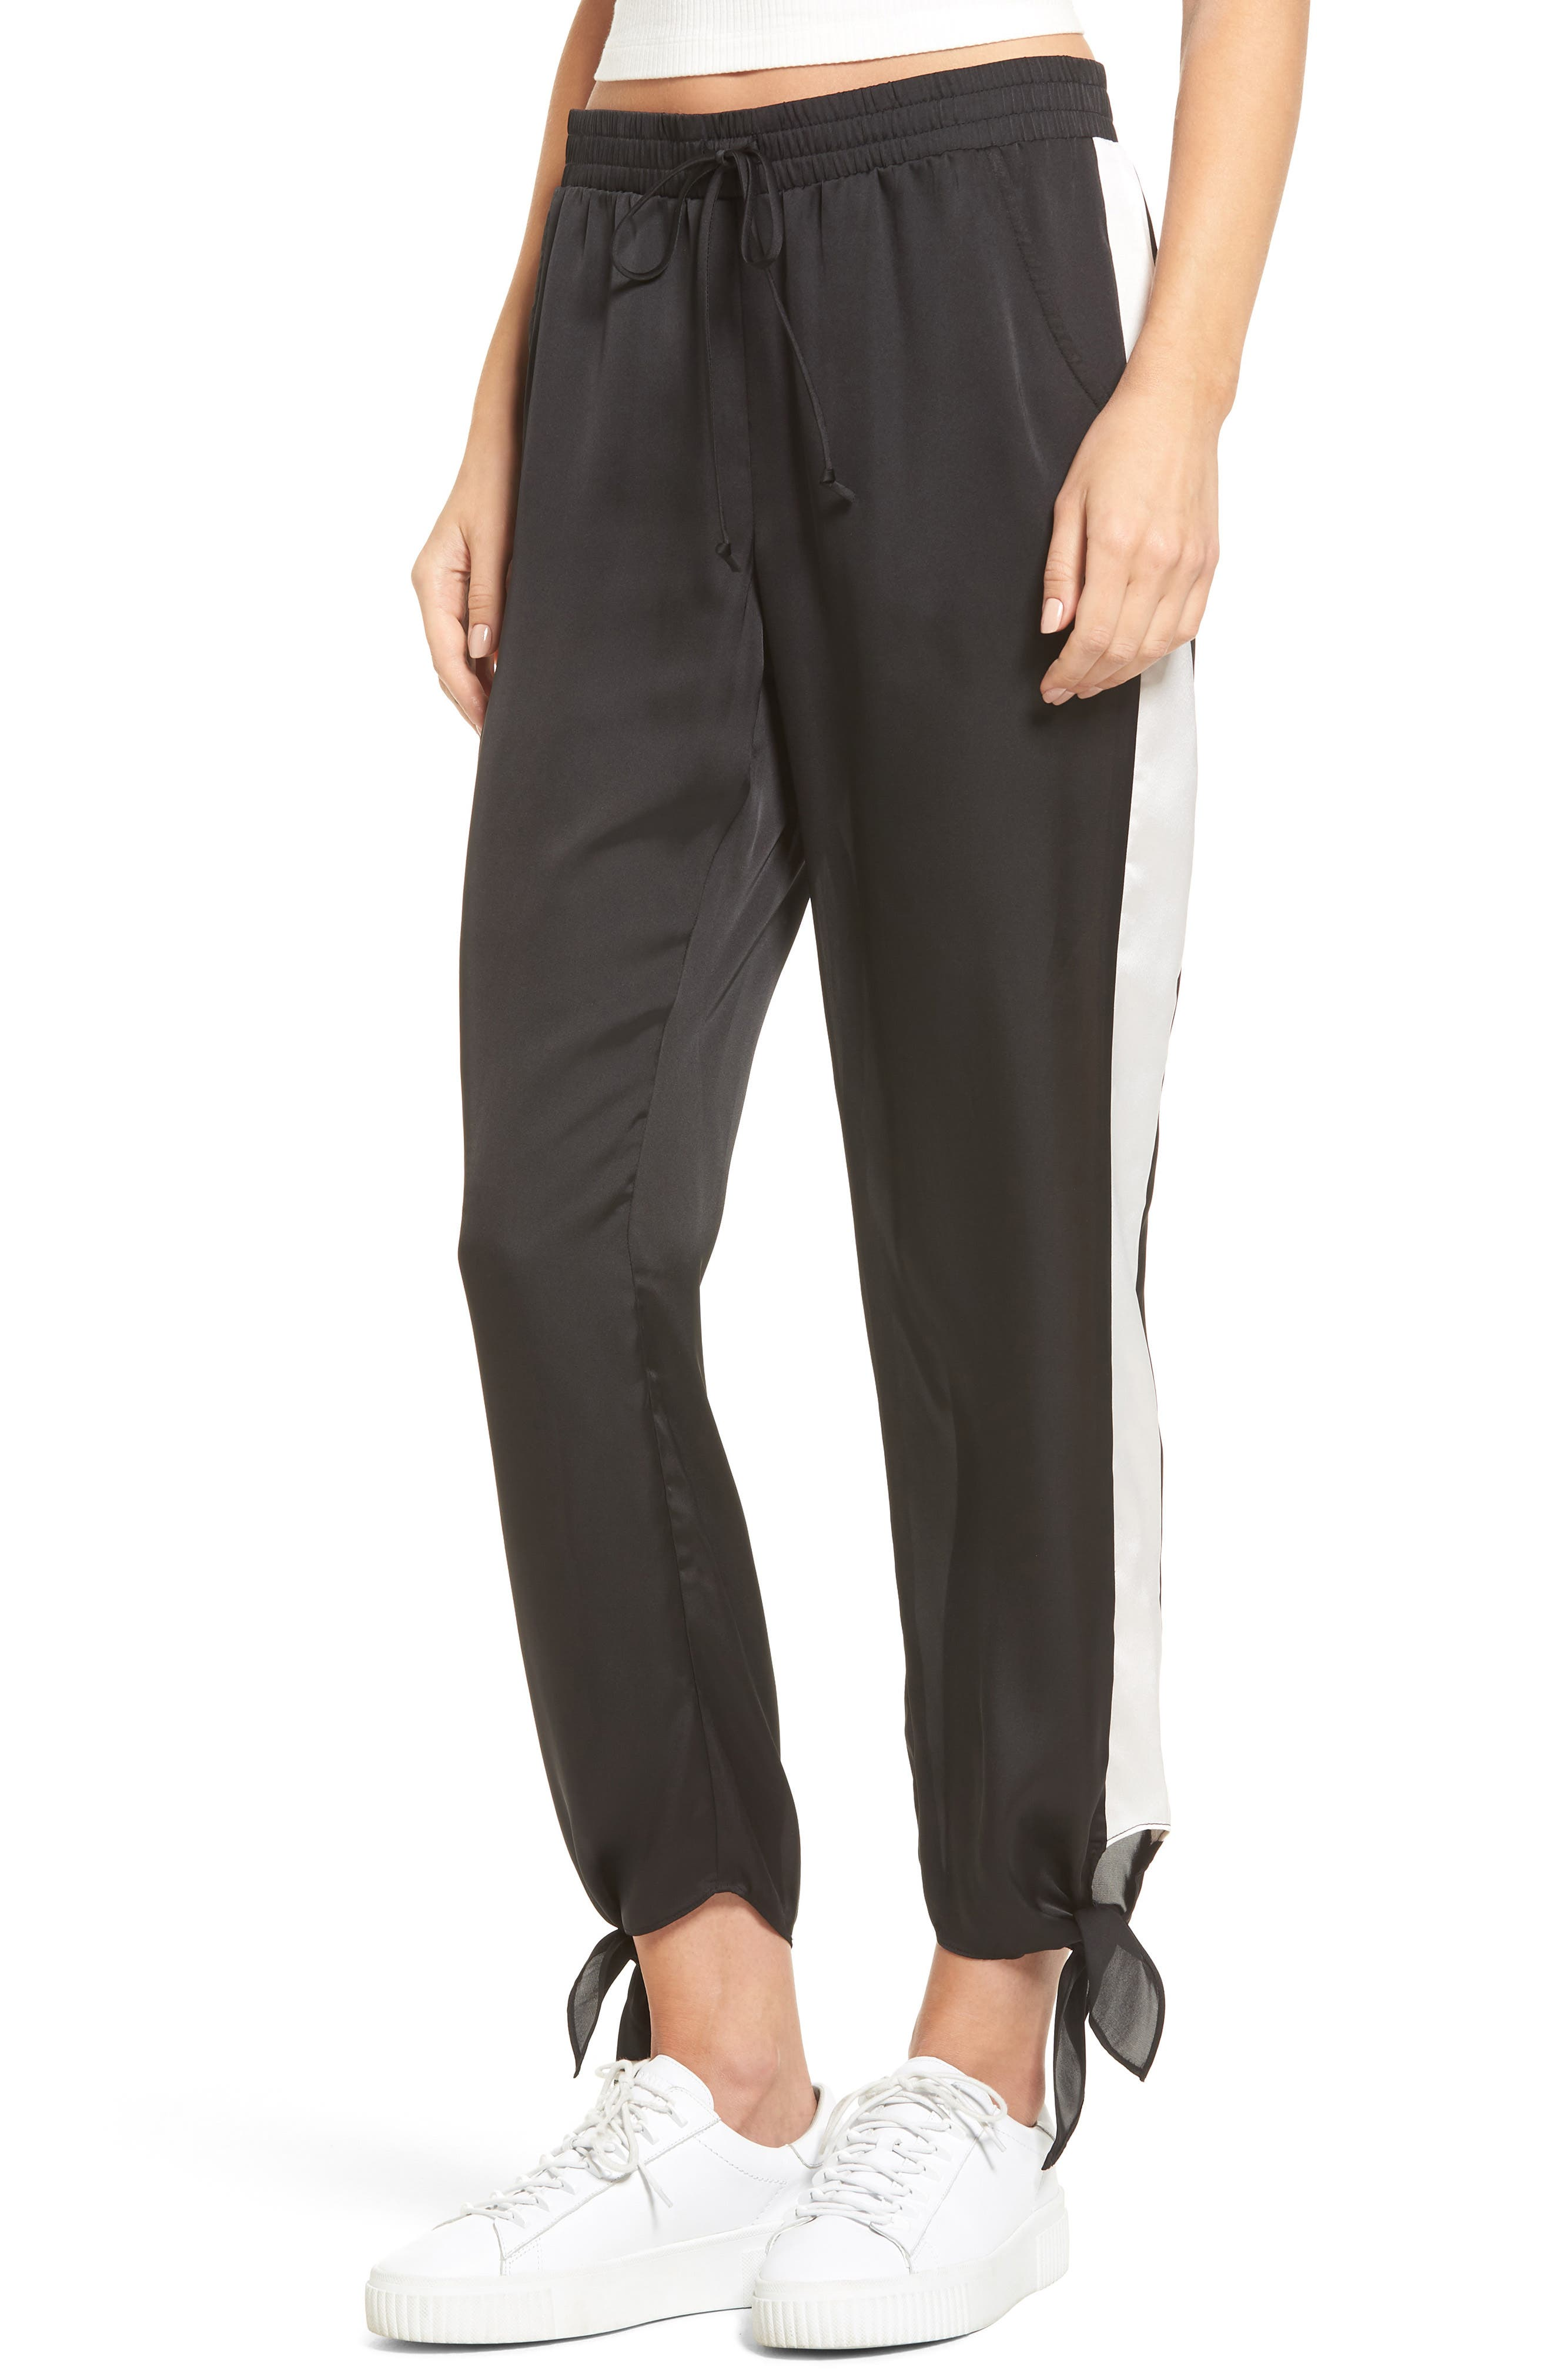 Ankle Tie Track Pants,                             Main thumbnail 1, color,                             001